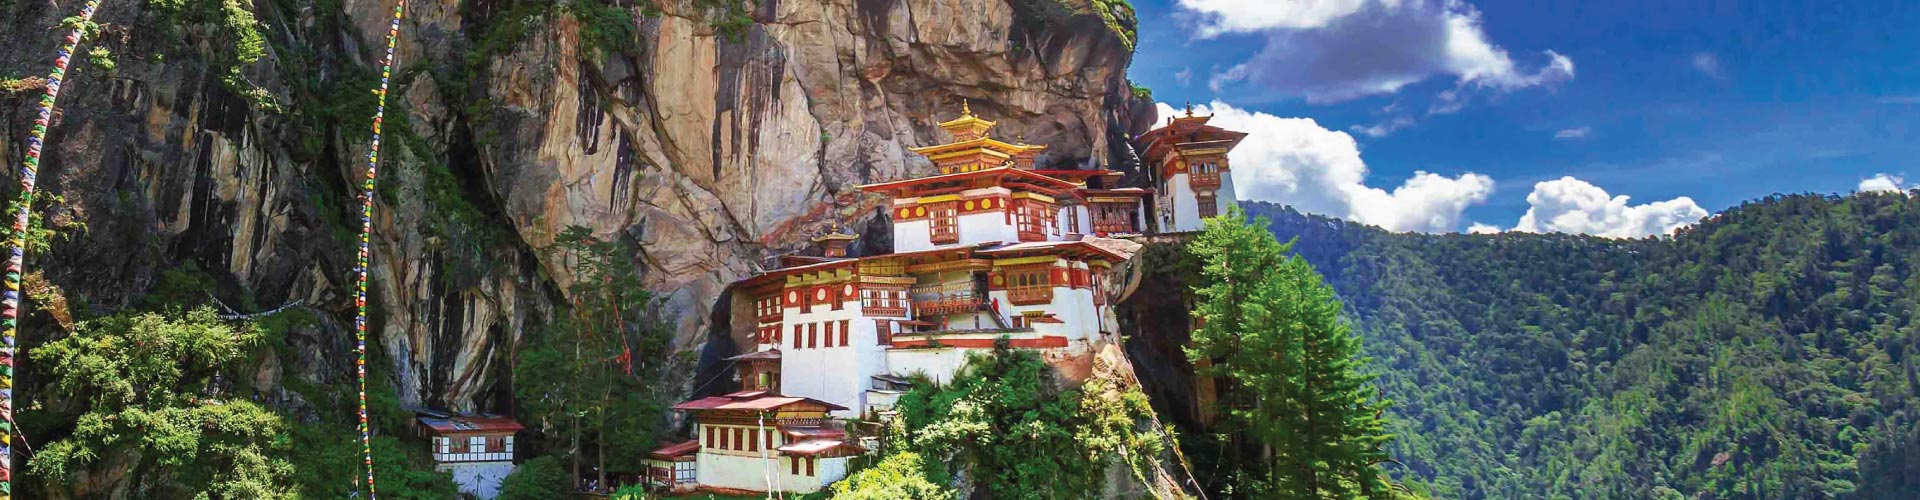 Tour - 4d3n Wonder Of Bhutan - Saast5alp04kh - R7